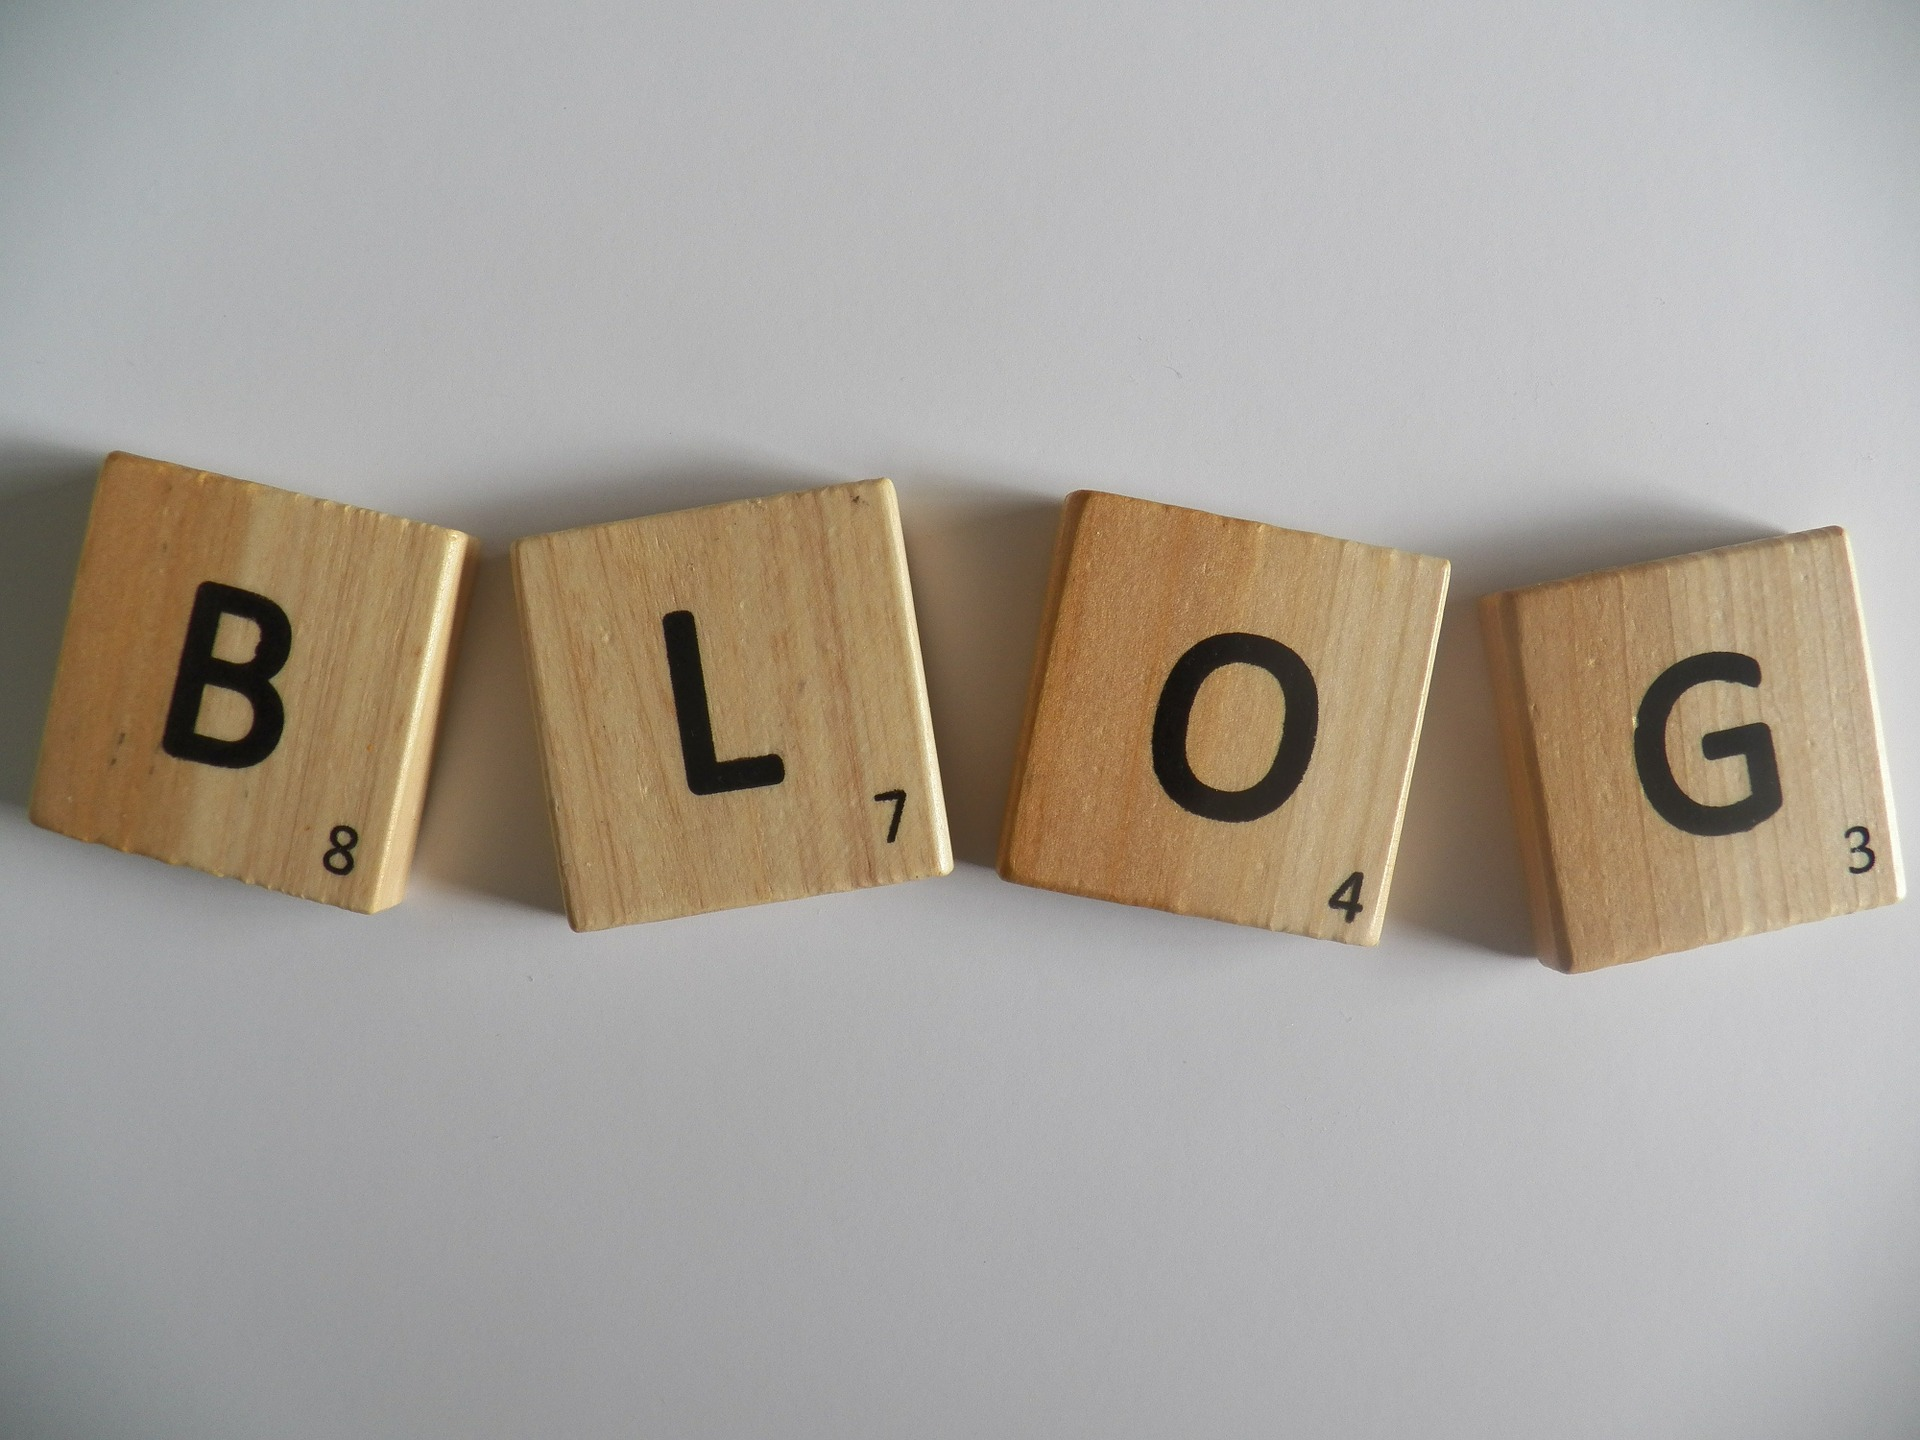 legal blog beginnen?